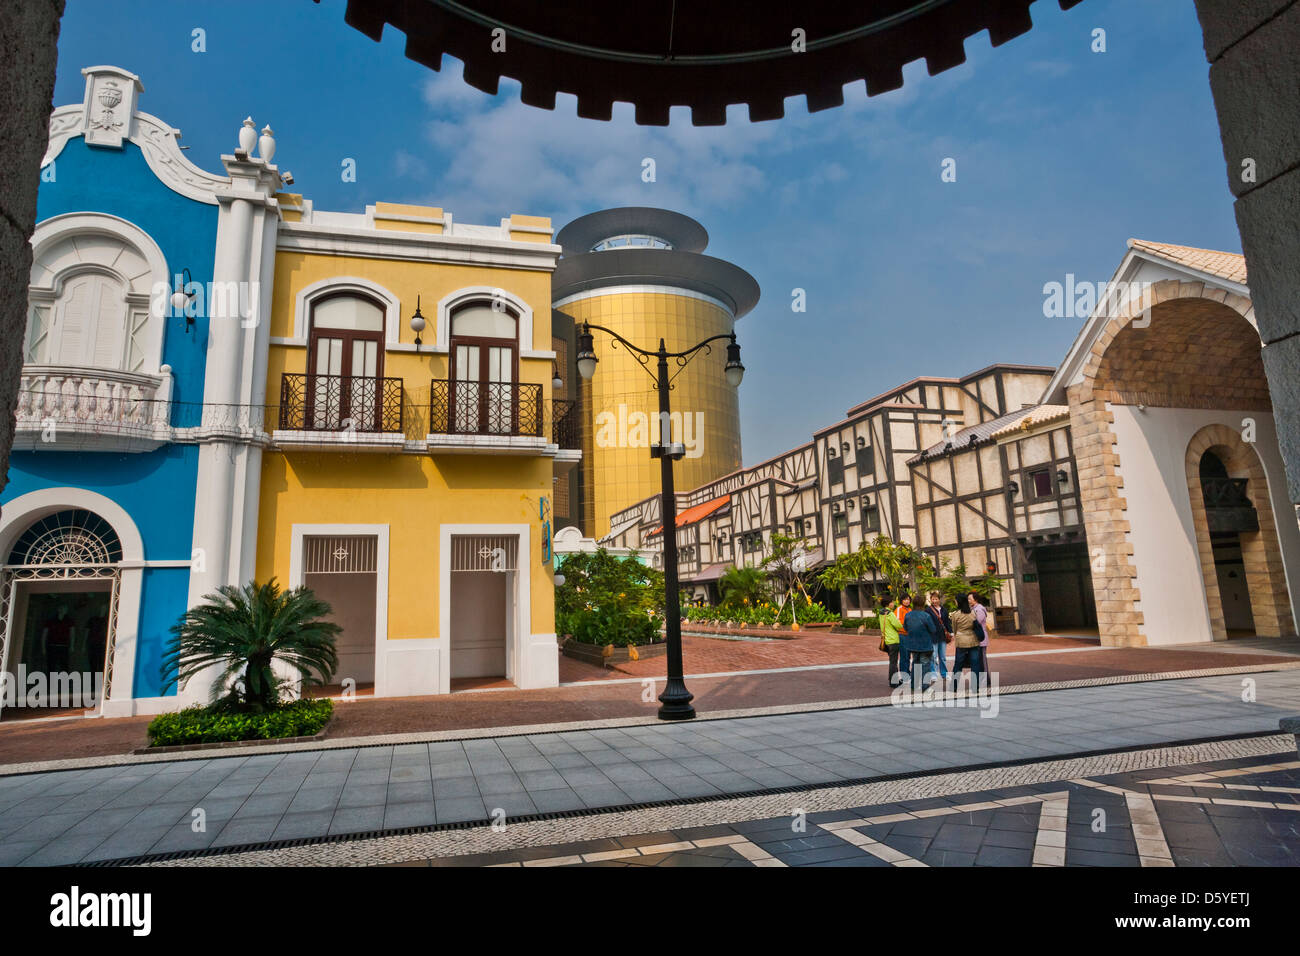 China, Macau, Legend Wharf, building replicas of Trinidad and Havana are flanked by buildings in Venetian and roman - Stock Image